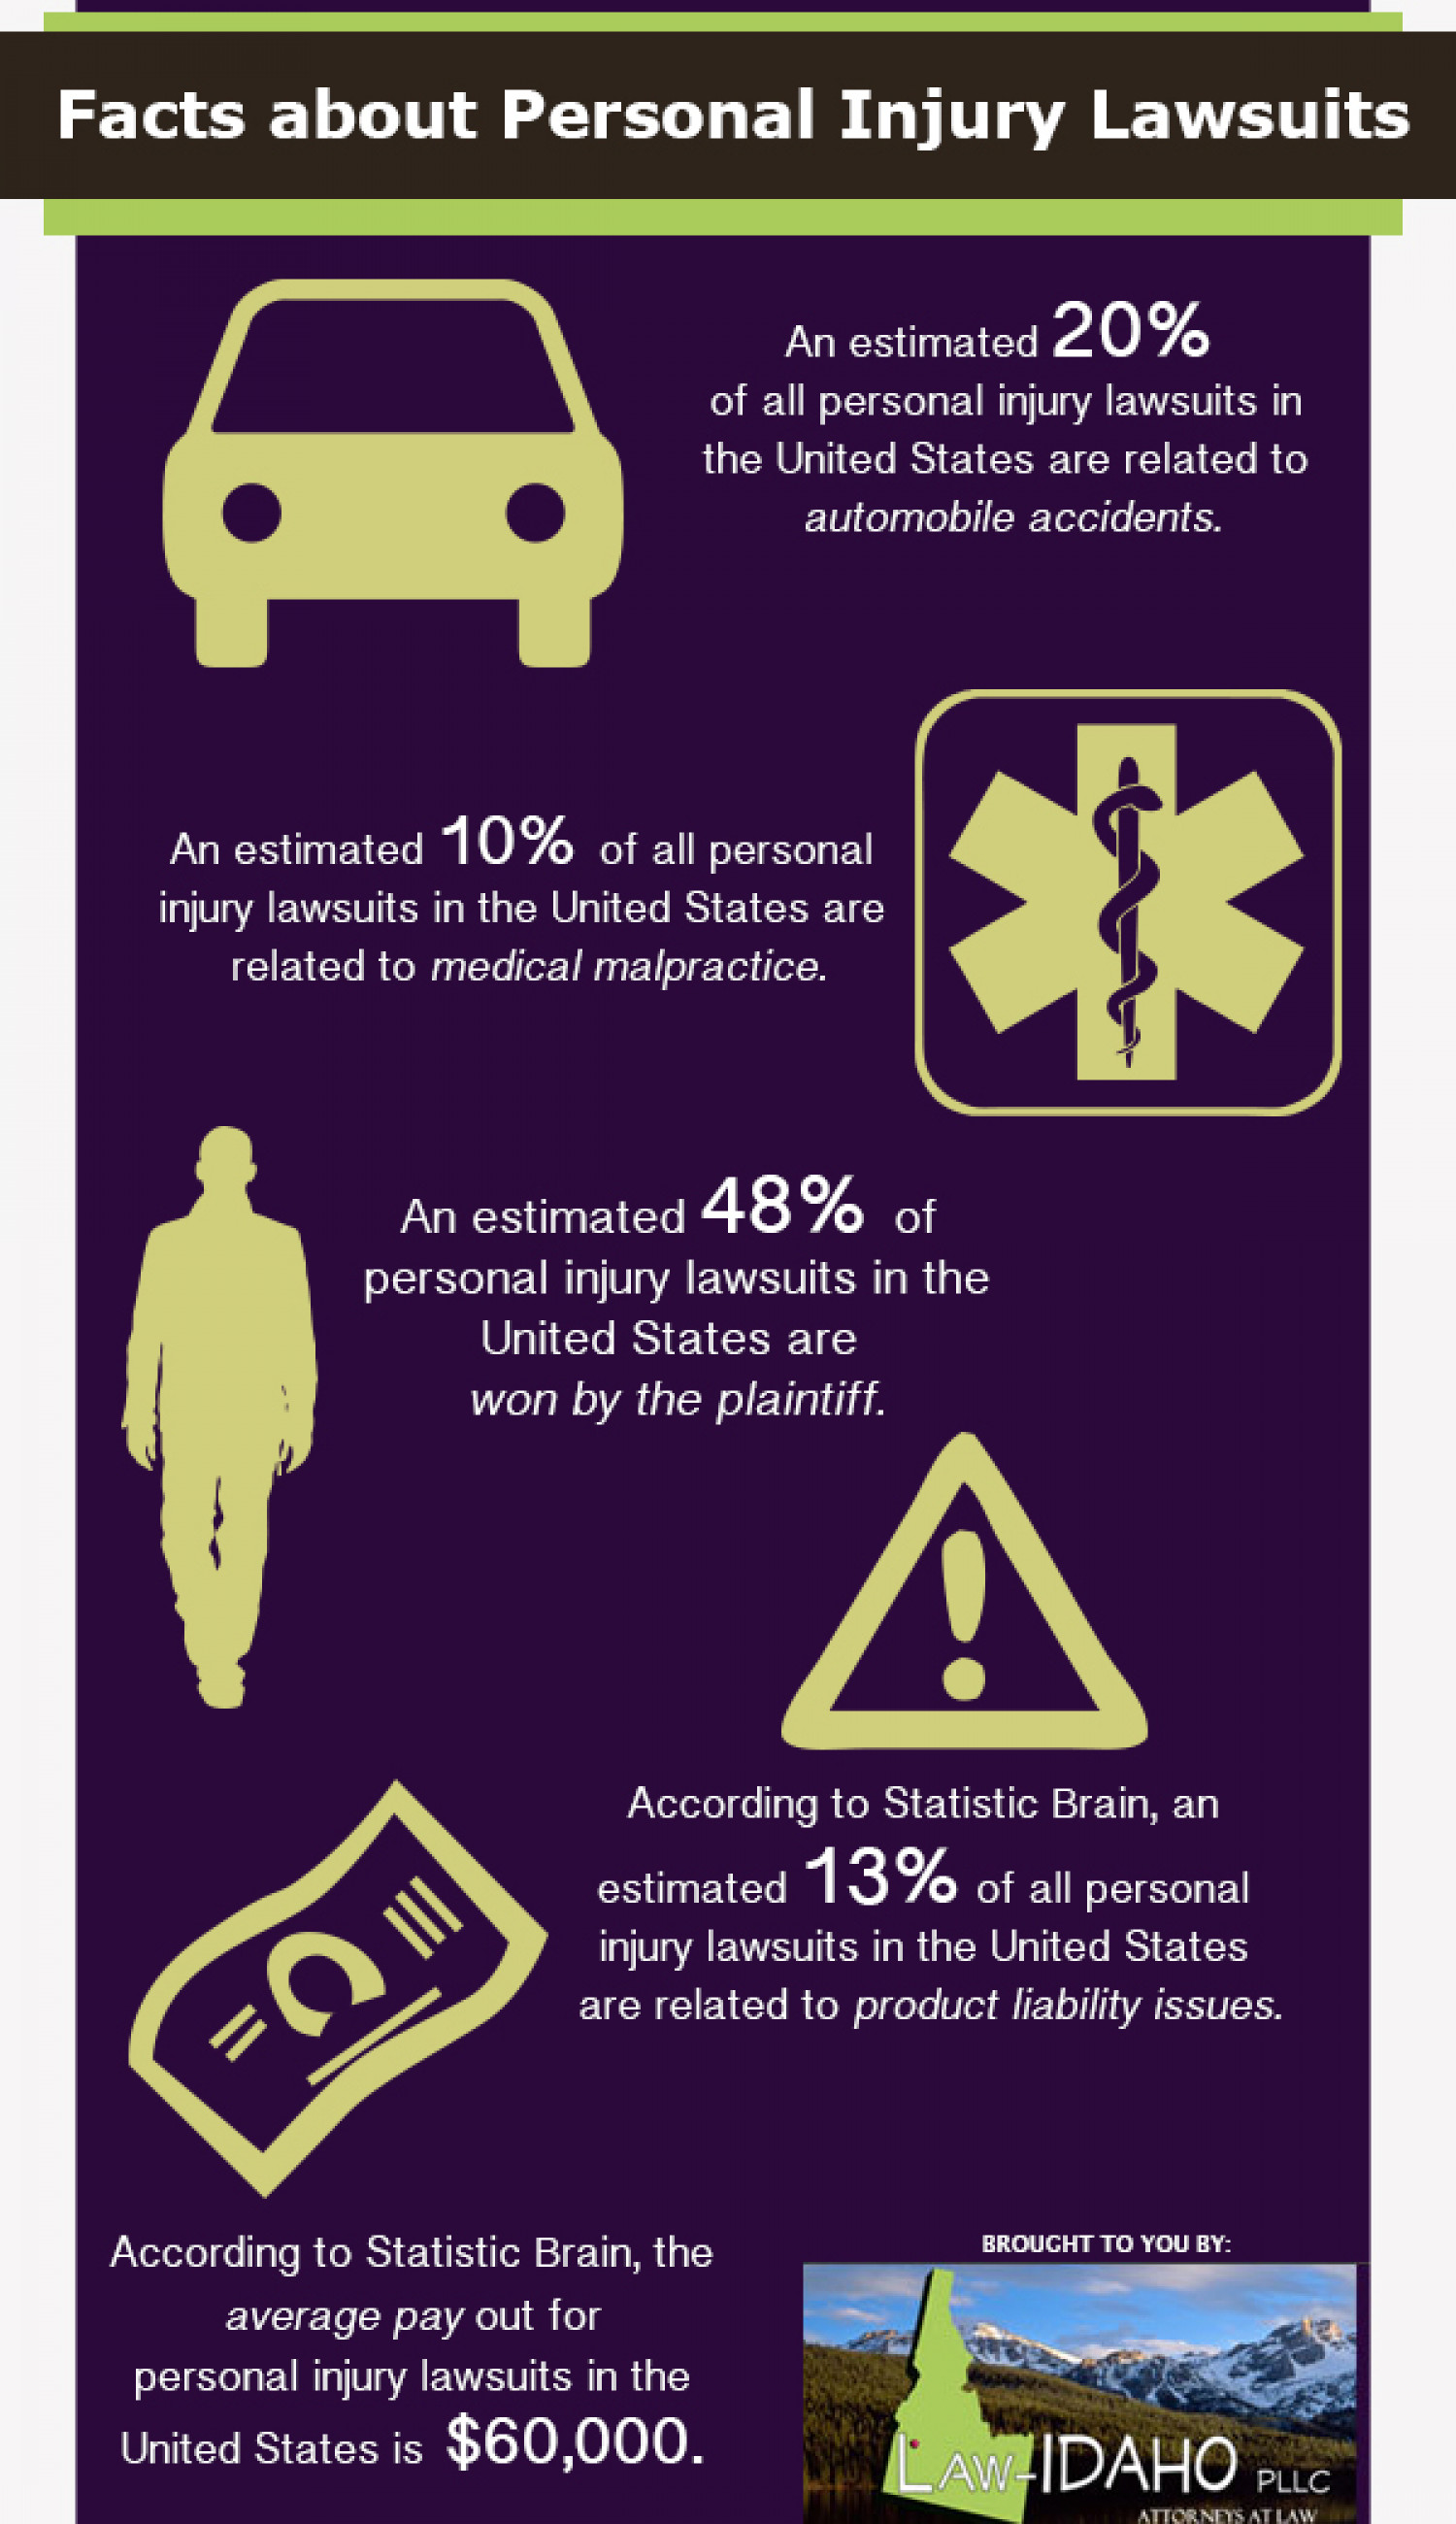 Facts About Personal Injury Lawsuits Infographic